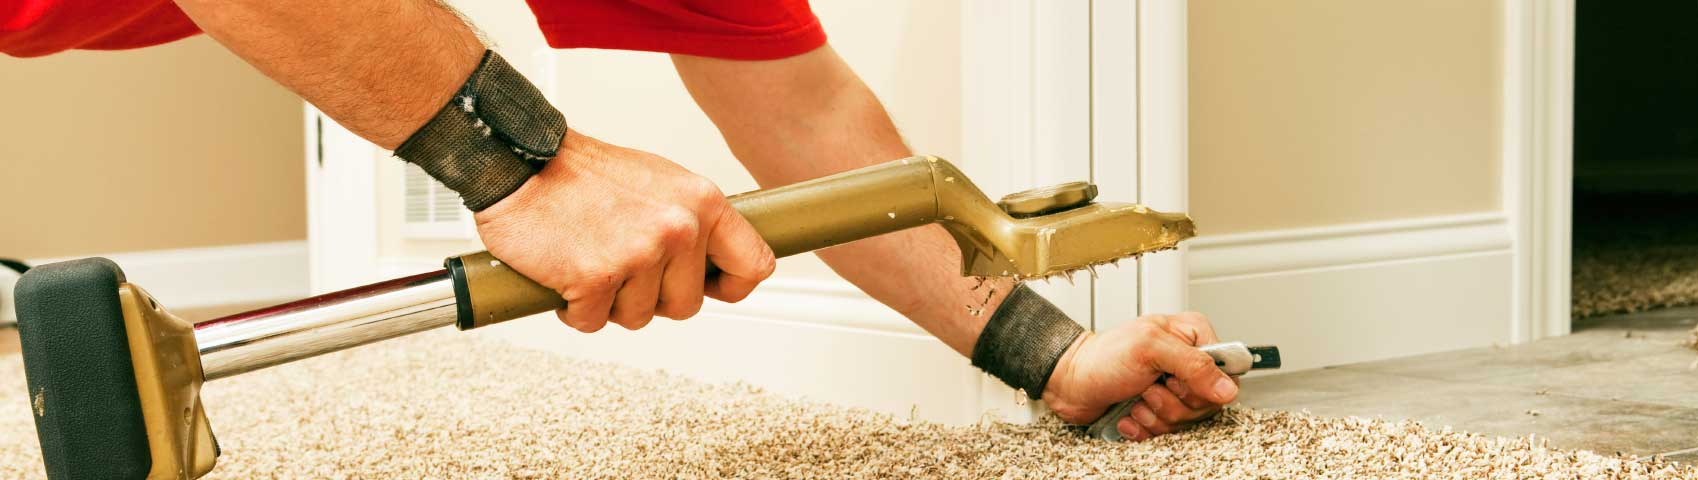 Carpet Repair - Generations Carpet Cleaning